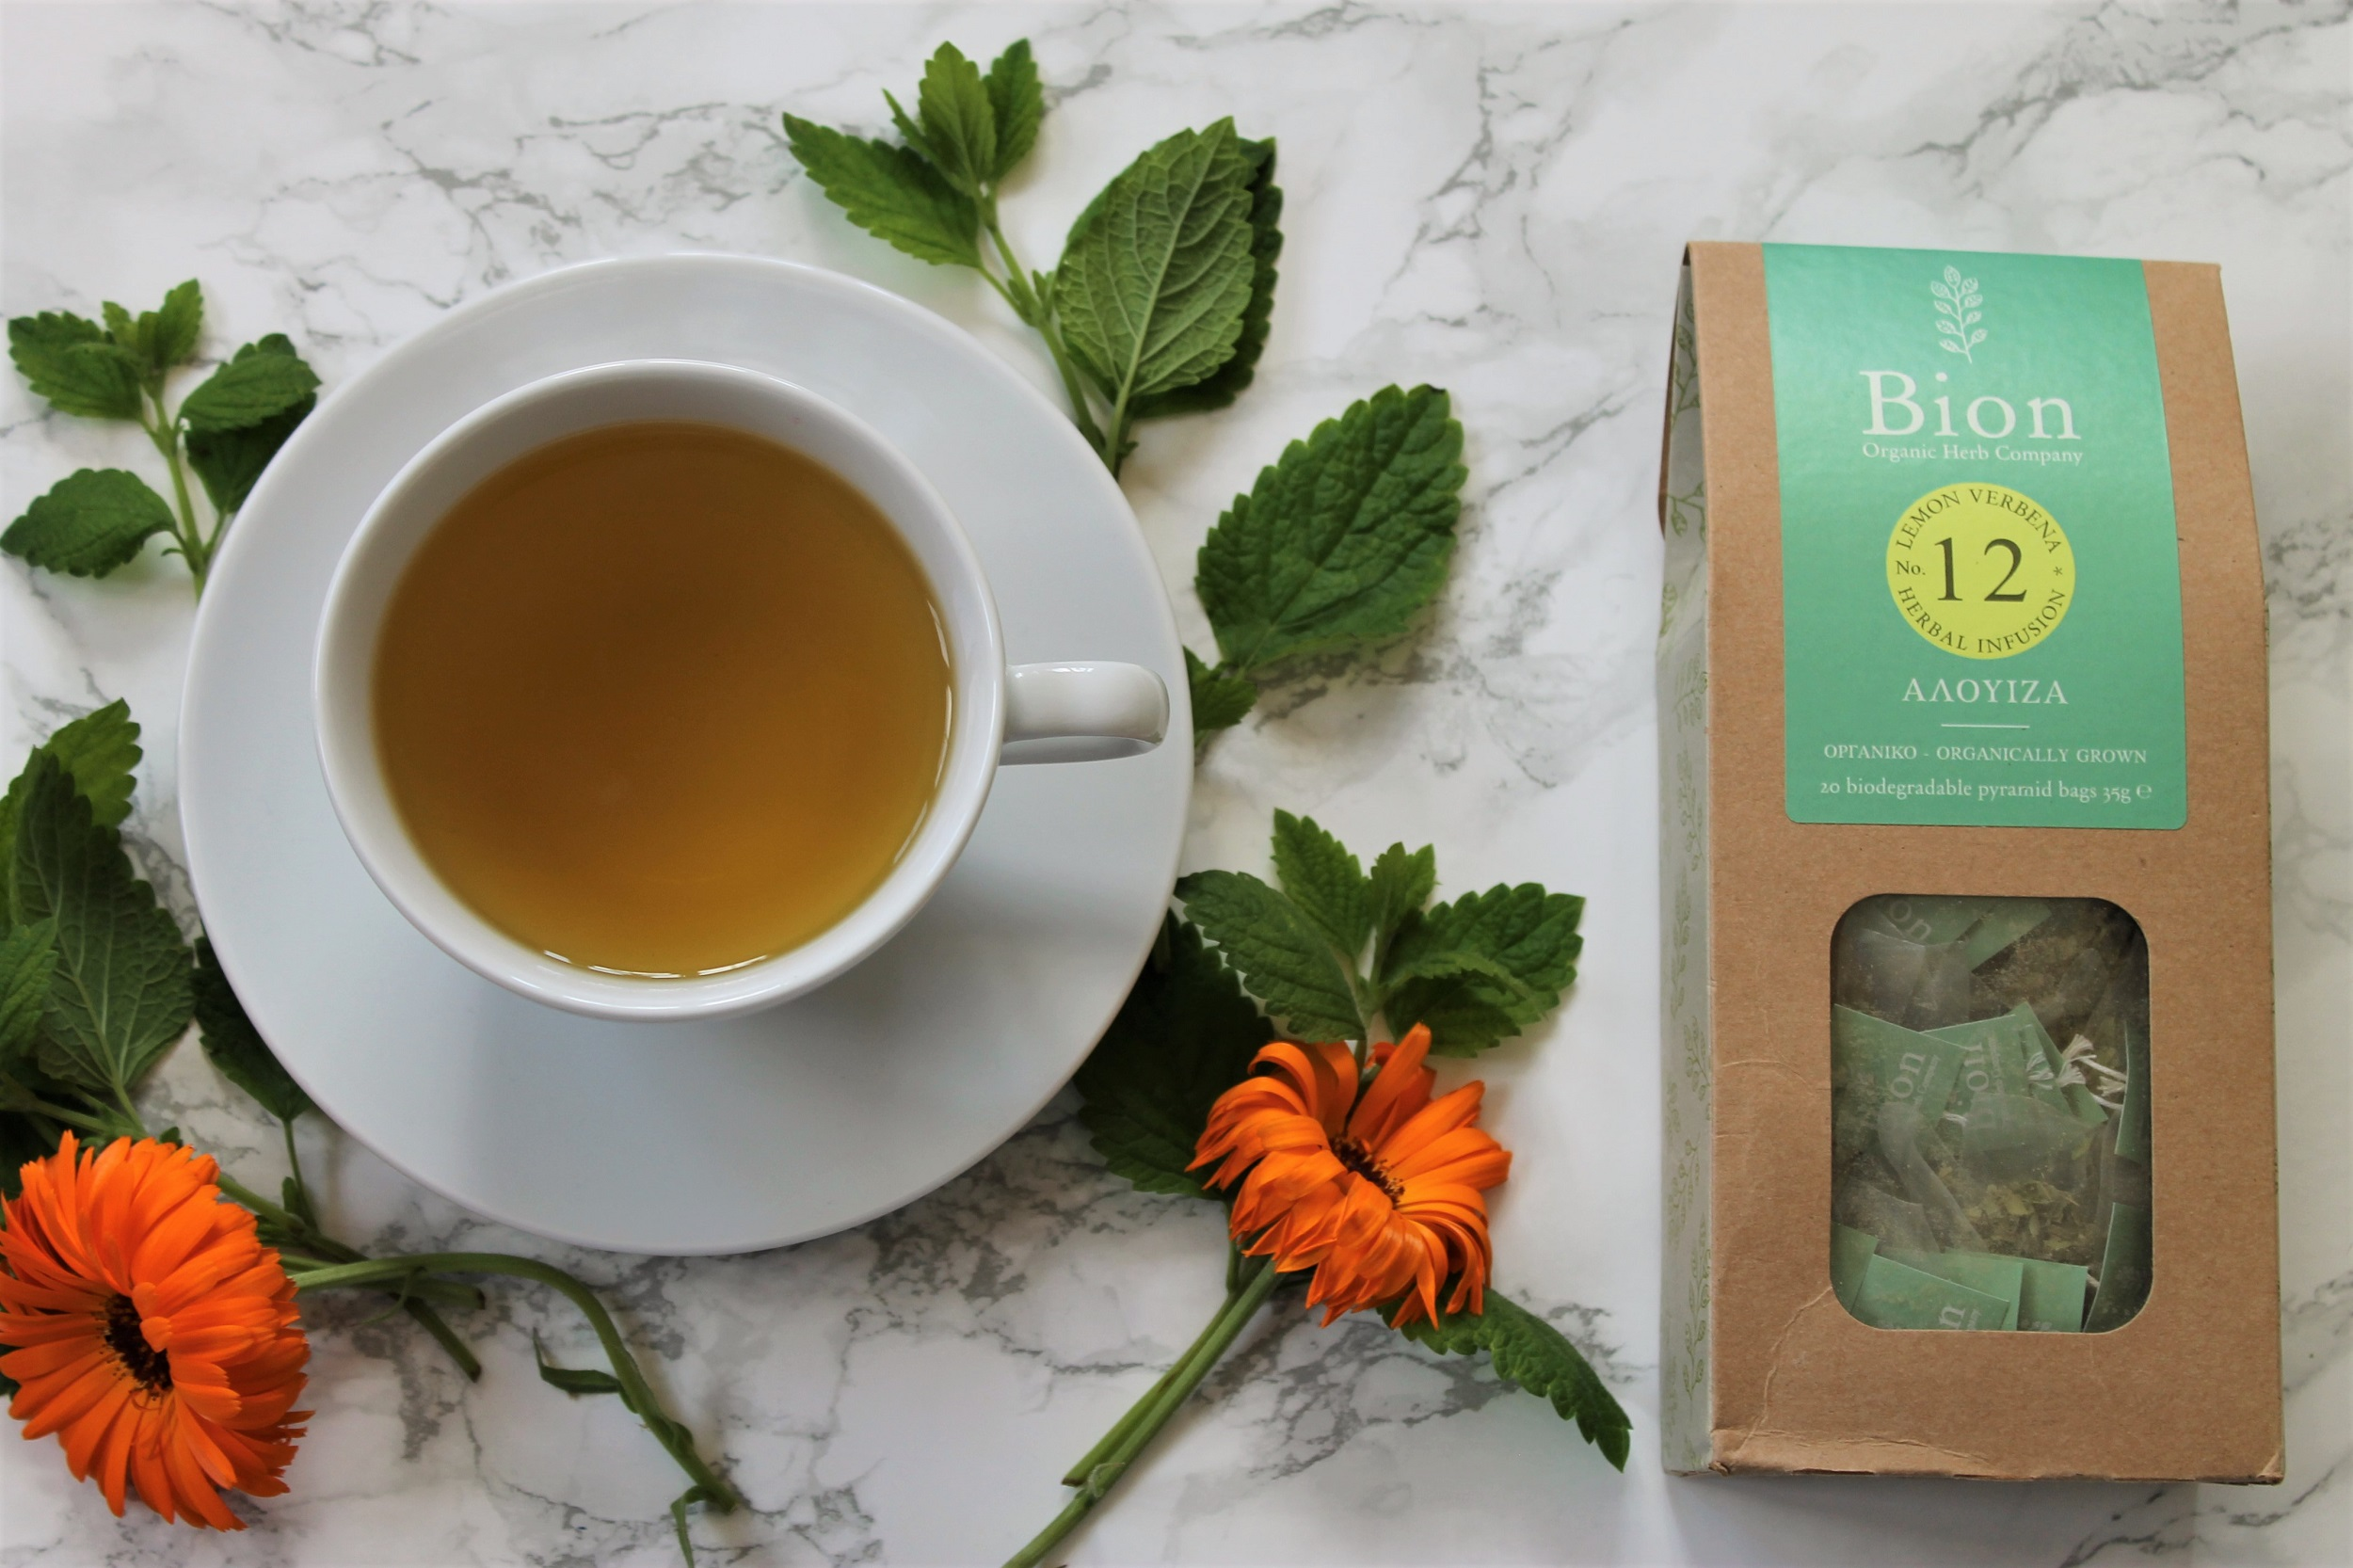 Bion Lemon Verbena Tea Review